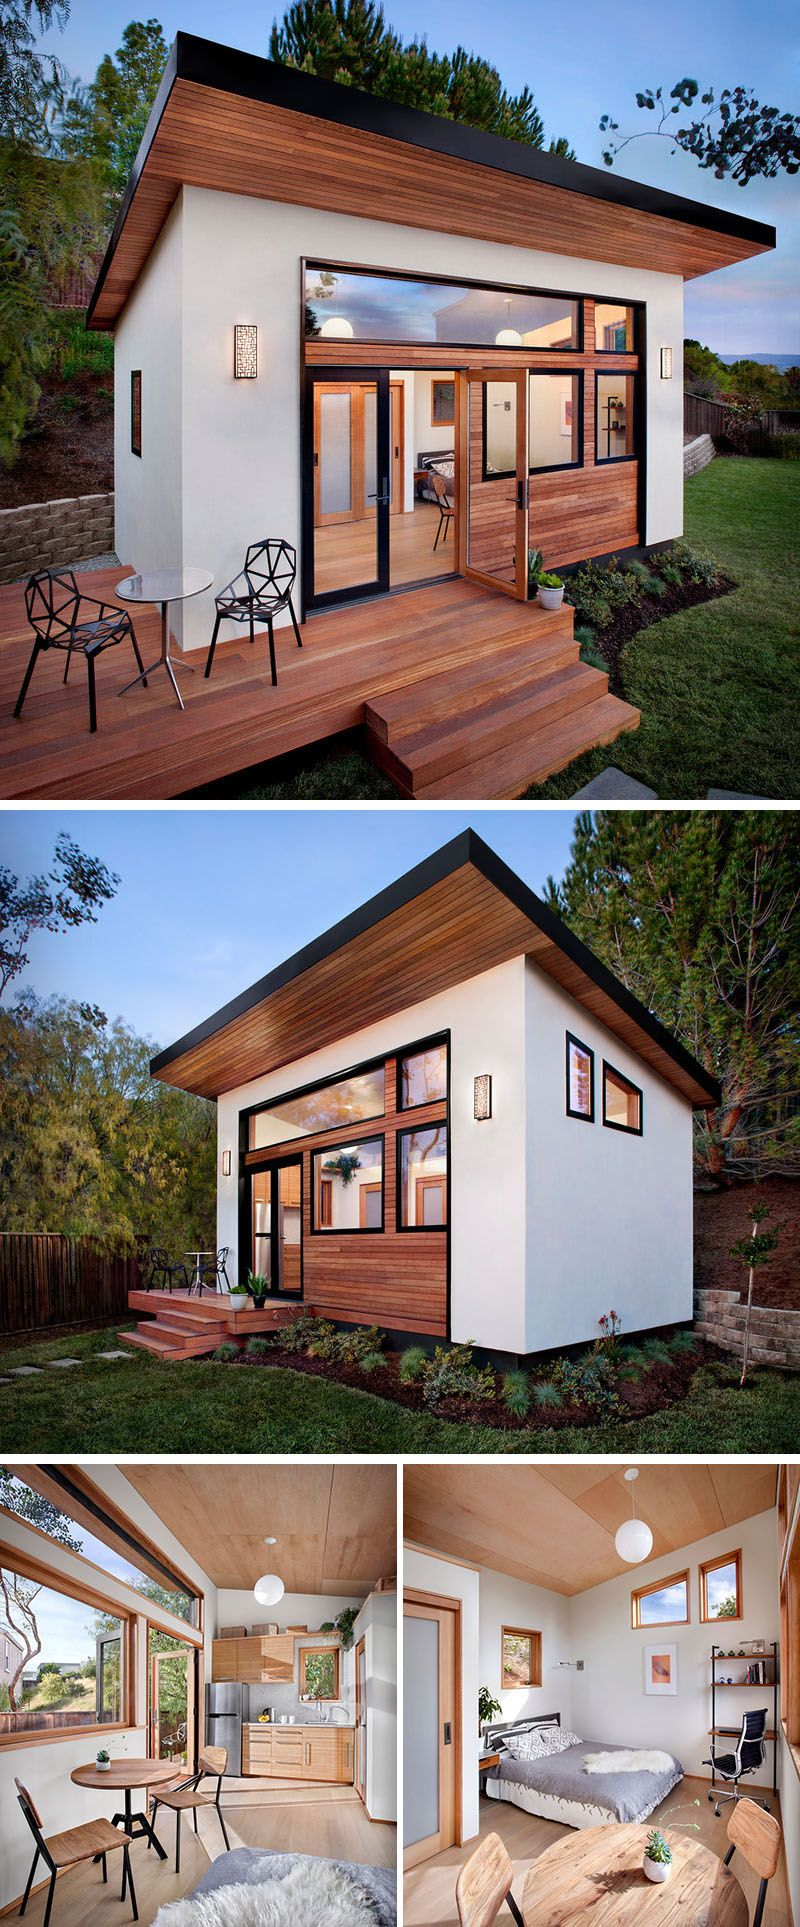 Home And Backyard 14 inspirational backyard offices, studios and guest houses | garden